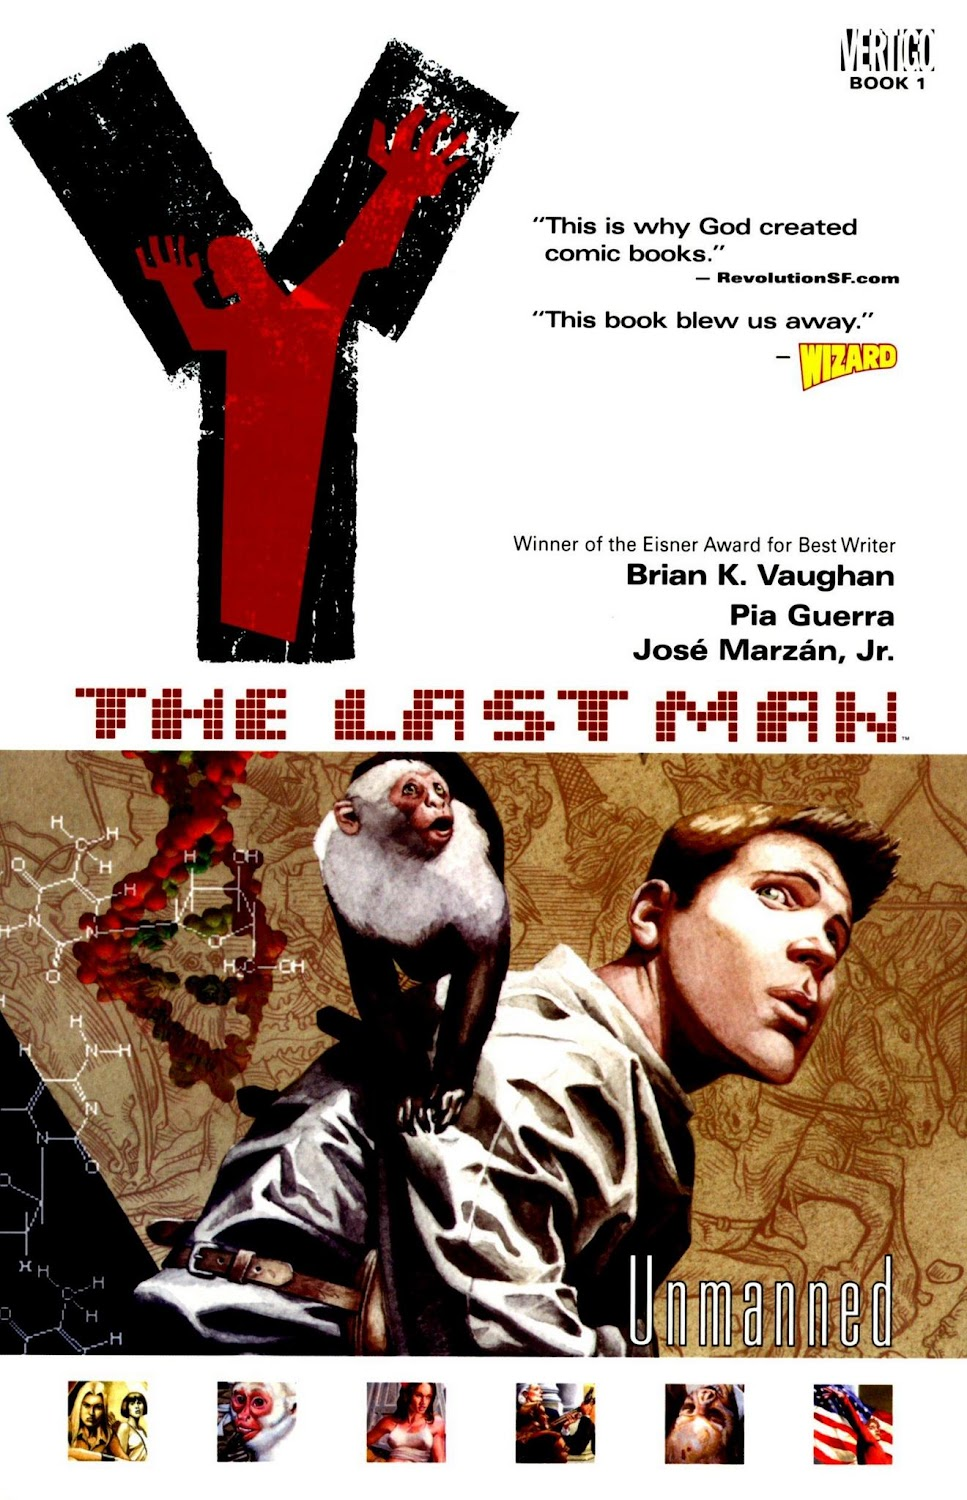 Y - The Last Man Vol. 1-10 TPB (2003) - complete